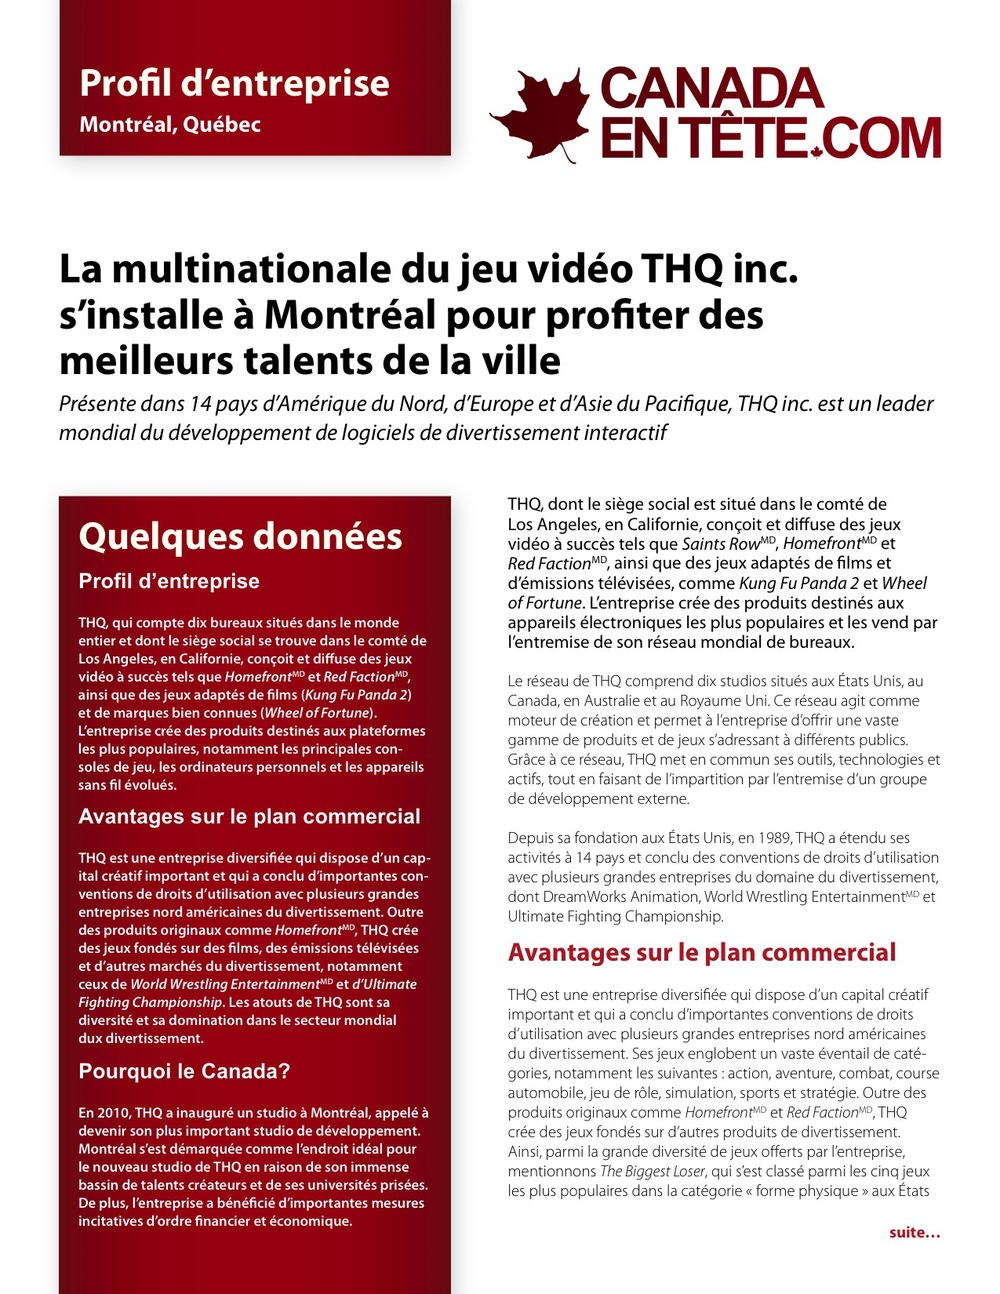 2011_01_CanadaEnTete_Montreal_THQ_1-0_view-page1.jpg